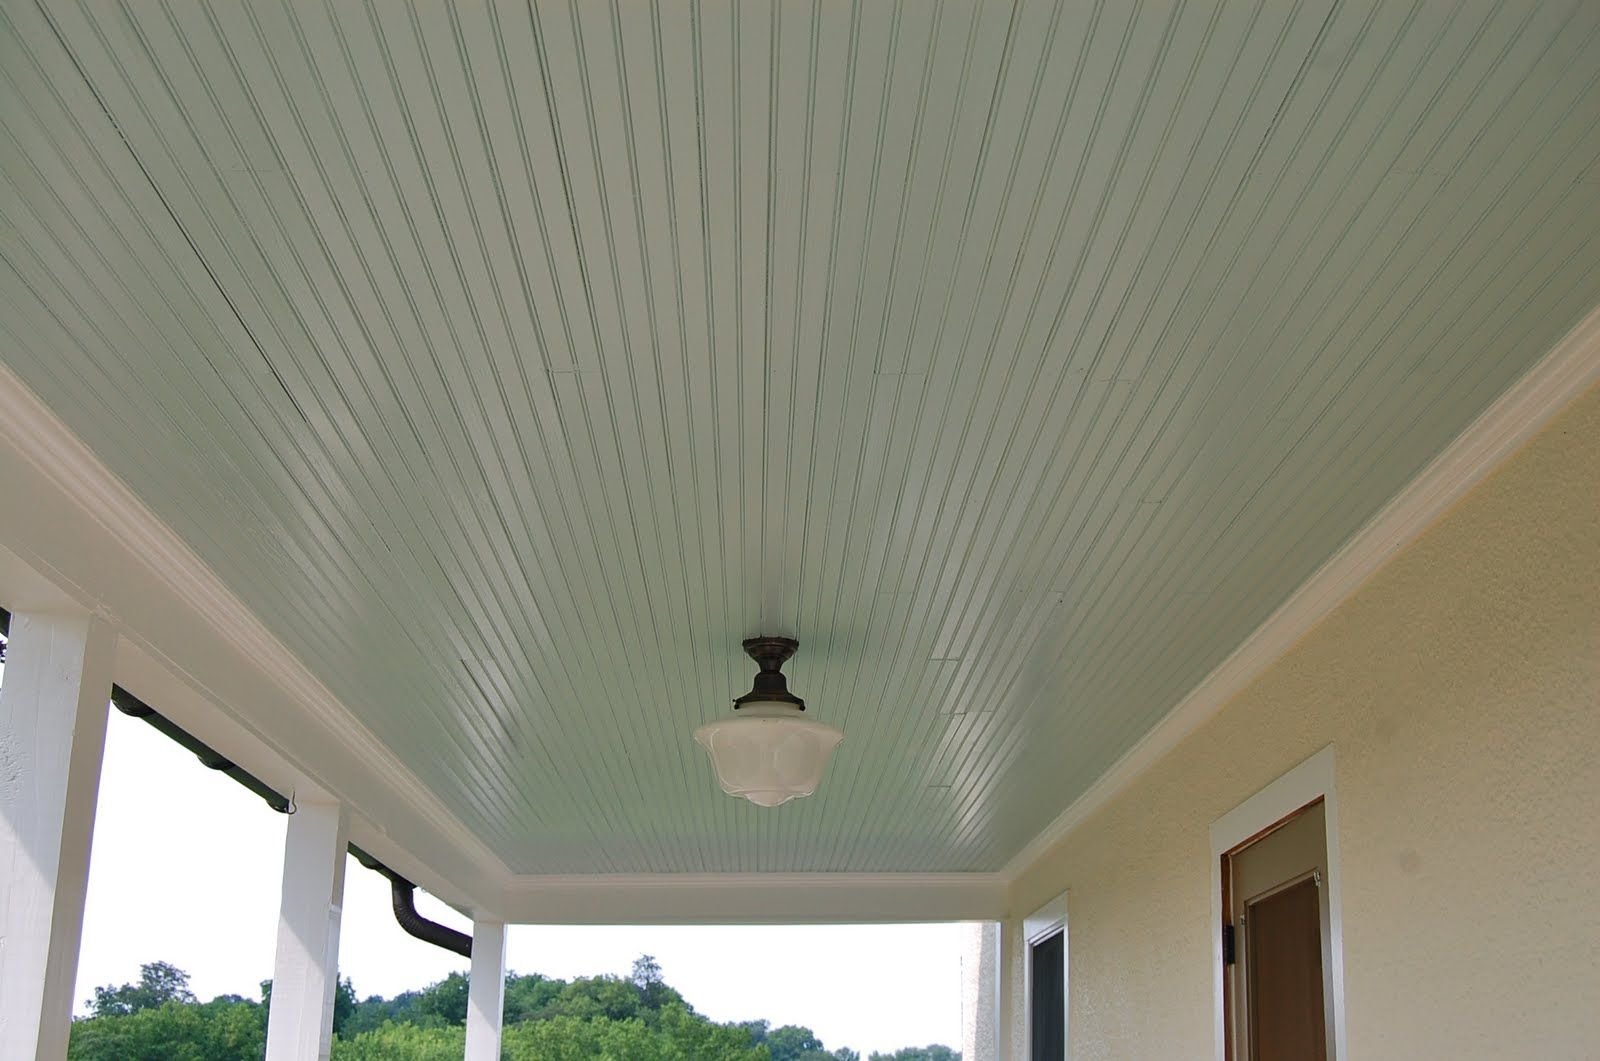 Haint blue sherwin williams the story of a farm life for Sherwin williams ceiling paint colors